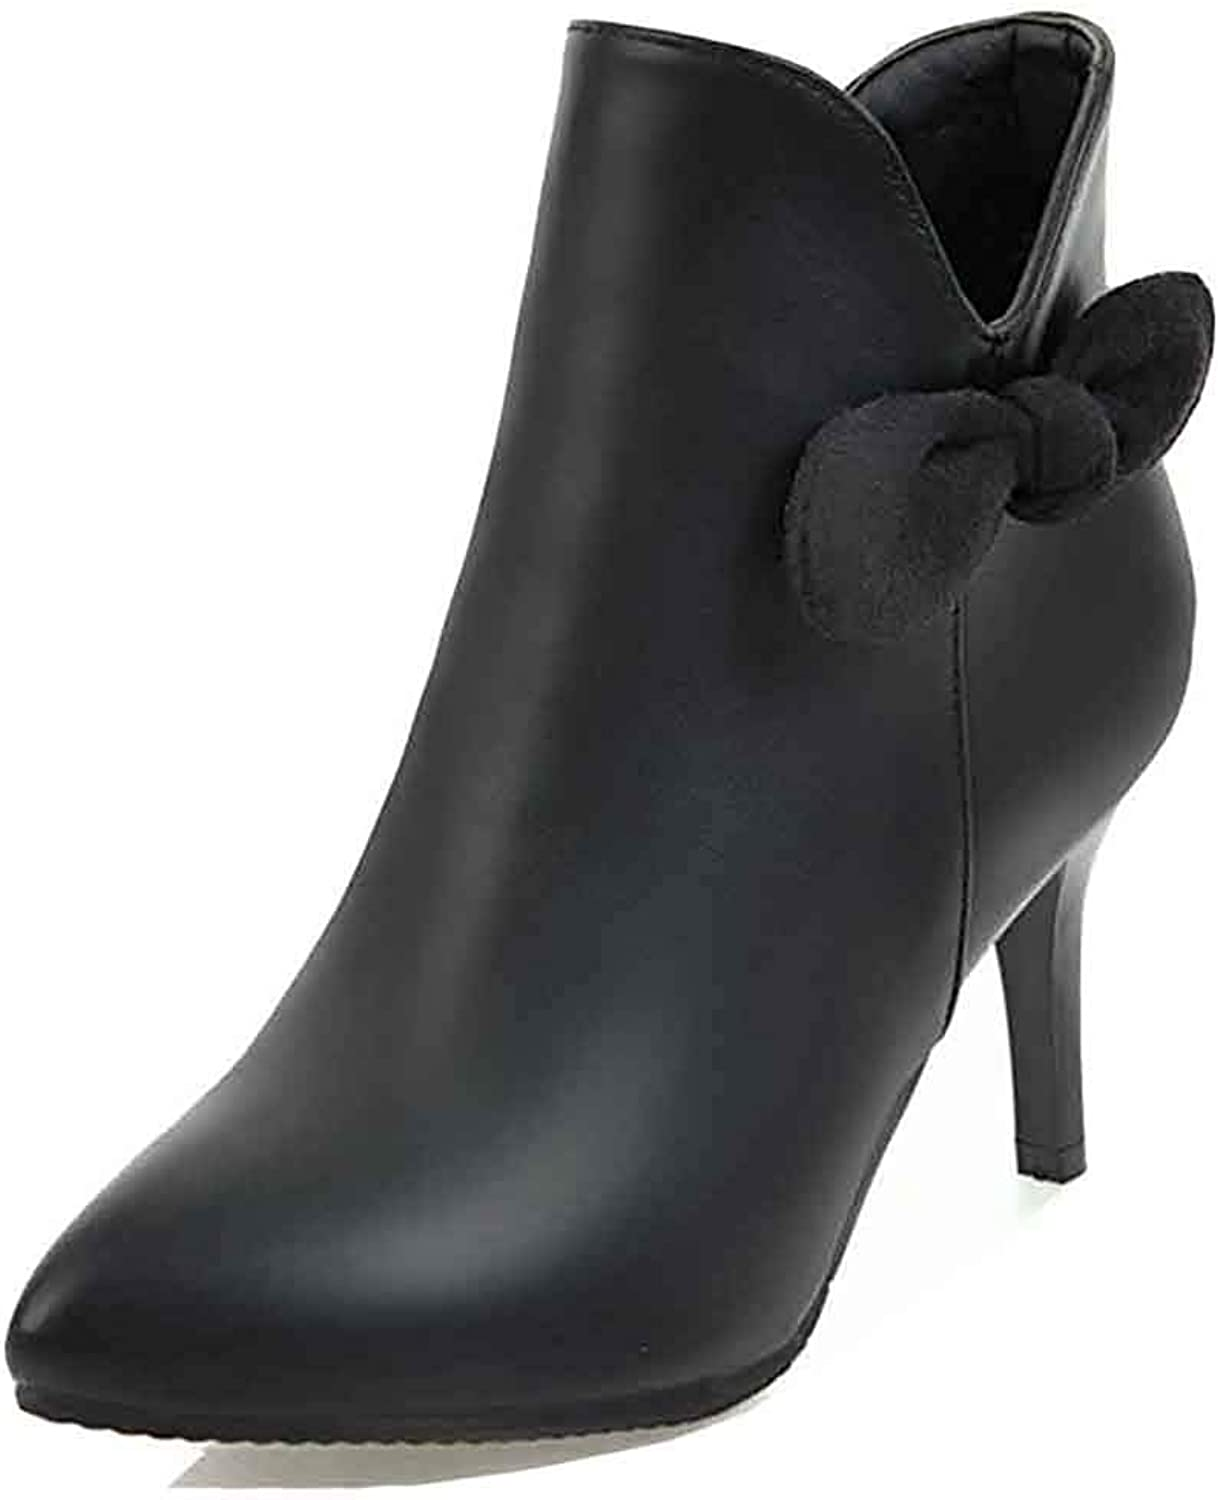 Unm Women's Elegant Bow Short Boots with Zipper - Trendy Sexy Pointy Toe - Stiletto High Heel Ankle Booties